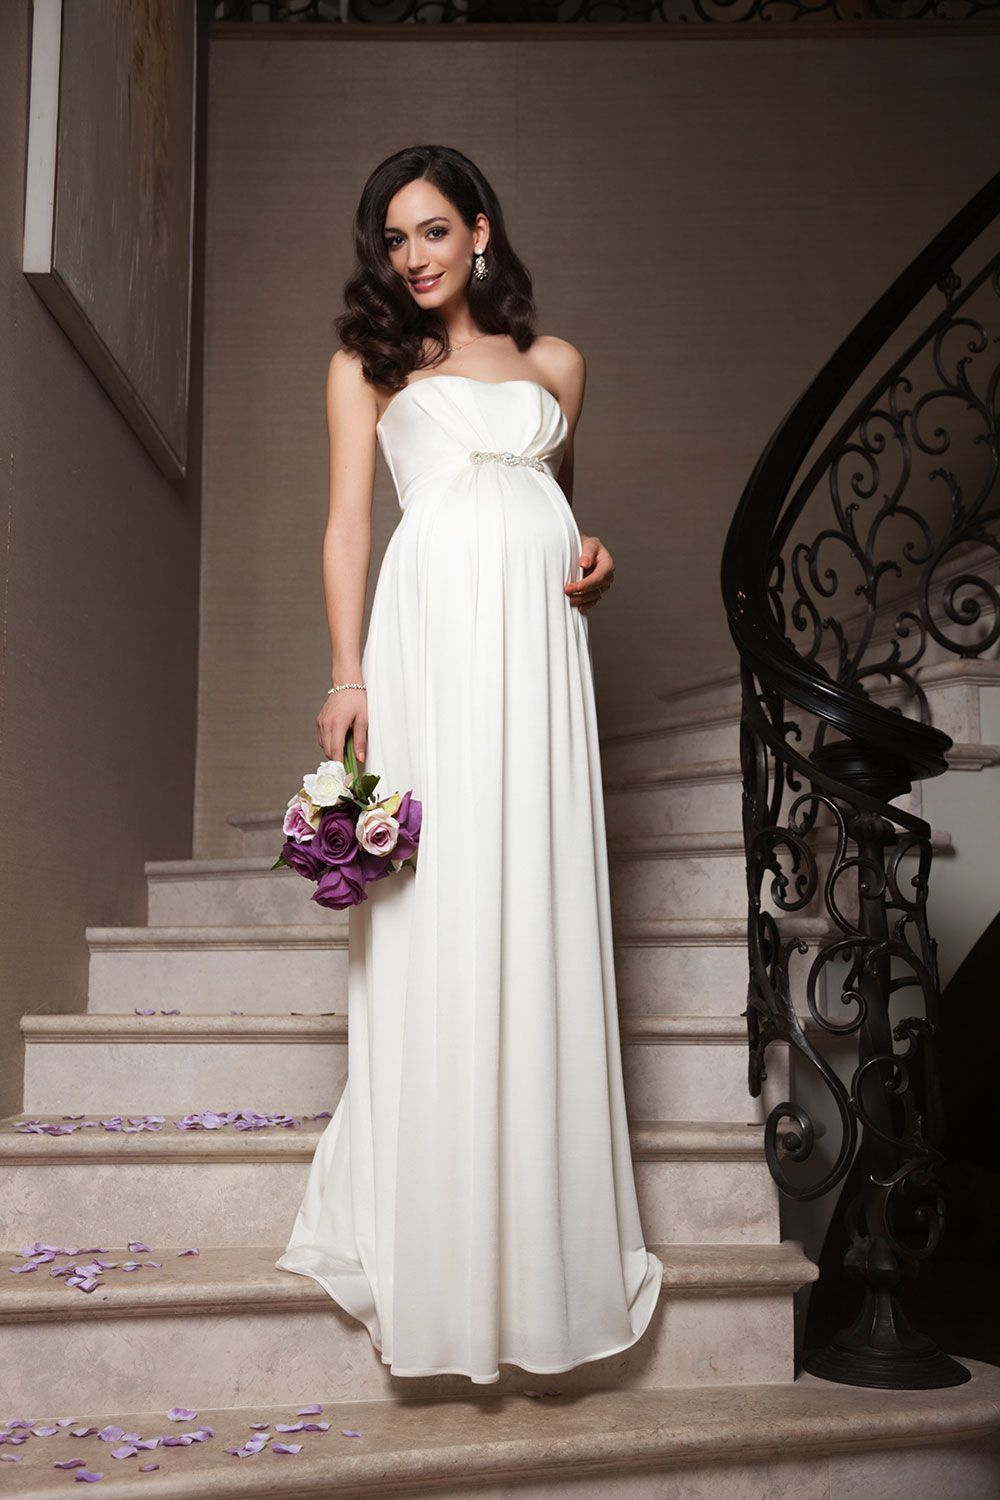 The best maternity wedding dresses strapless wedding dresses the best maternity wedding dresses ombrellifo Images